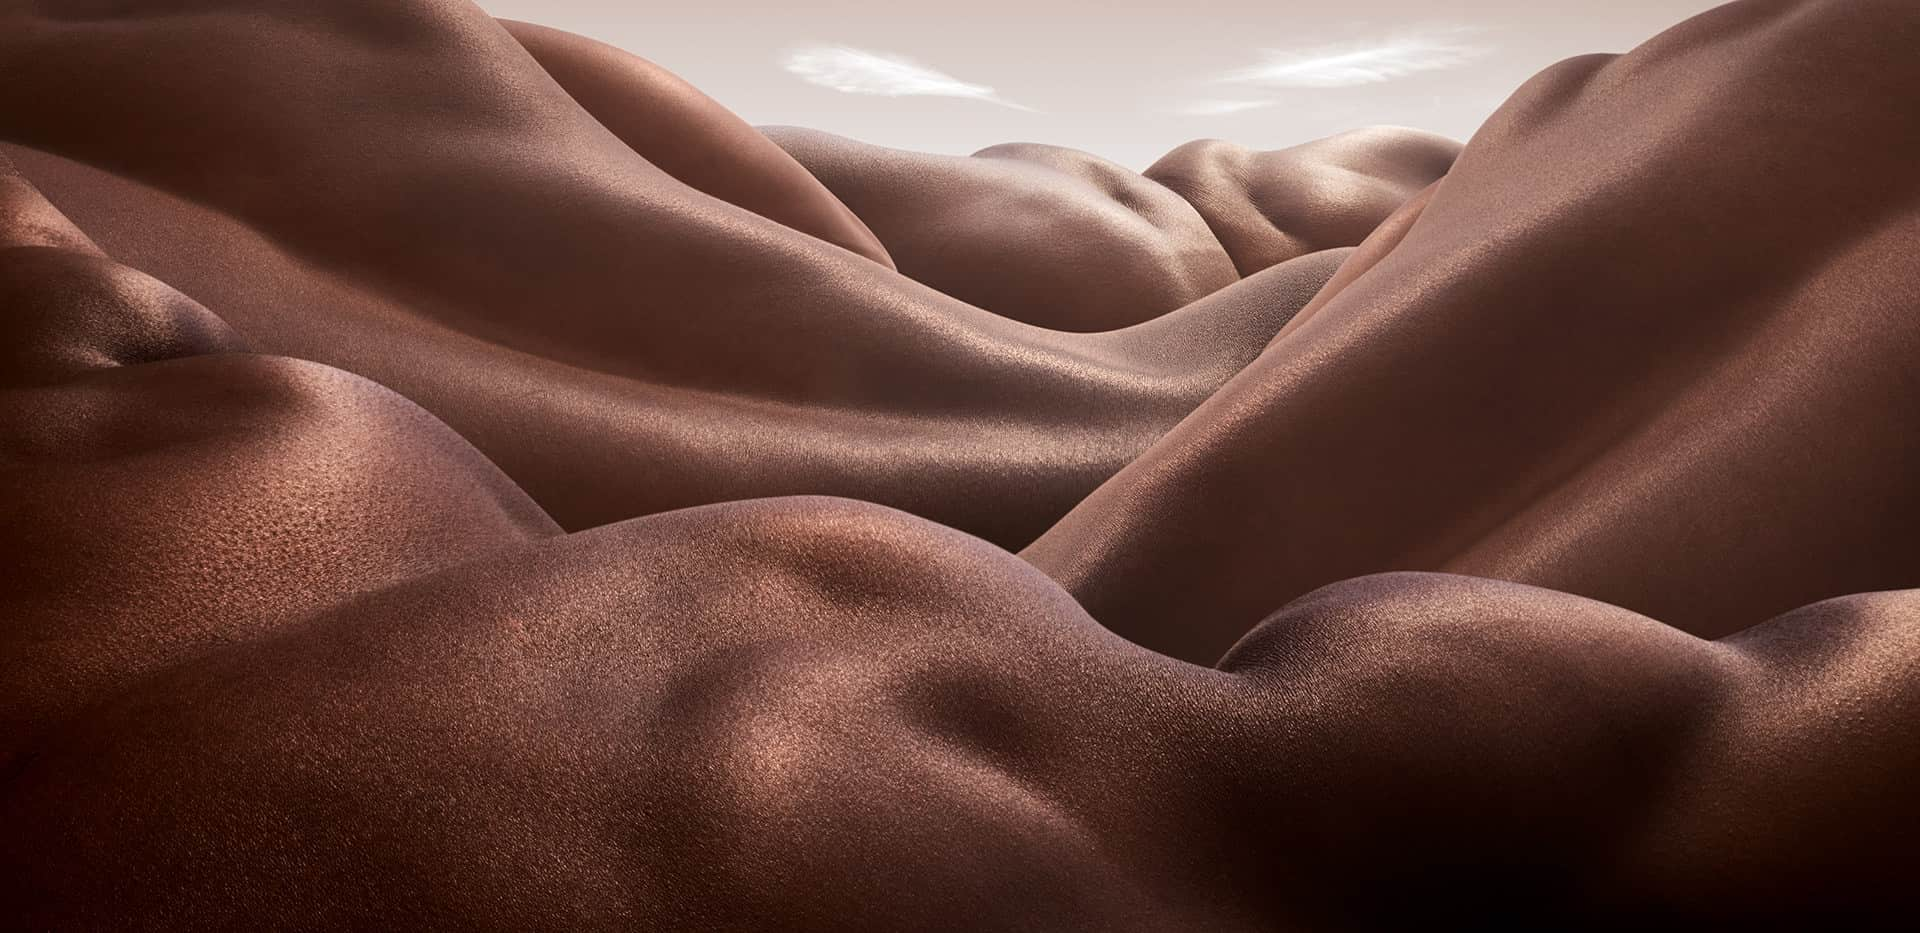 Bodyscape by Carl Warner: The Landscape of the Human Body